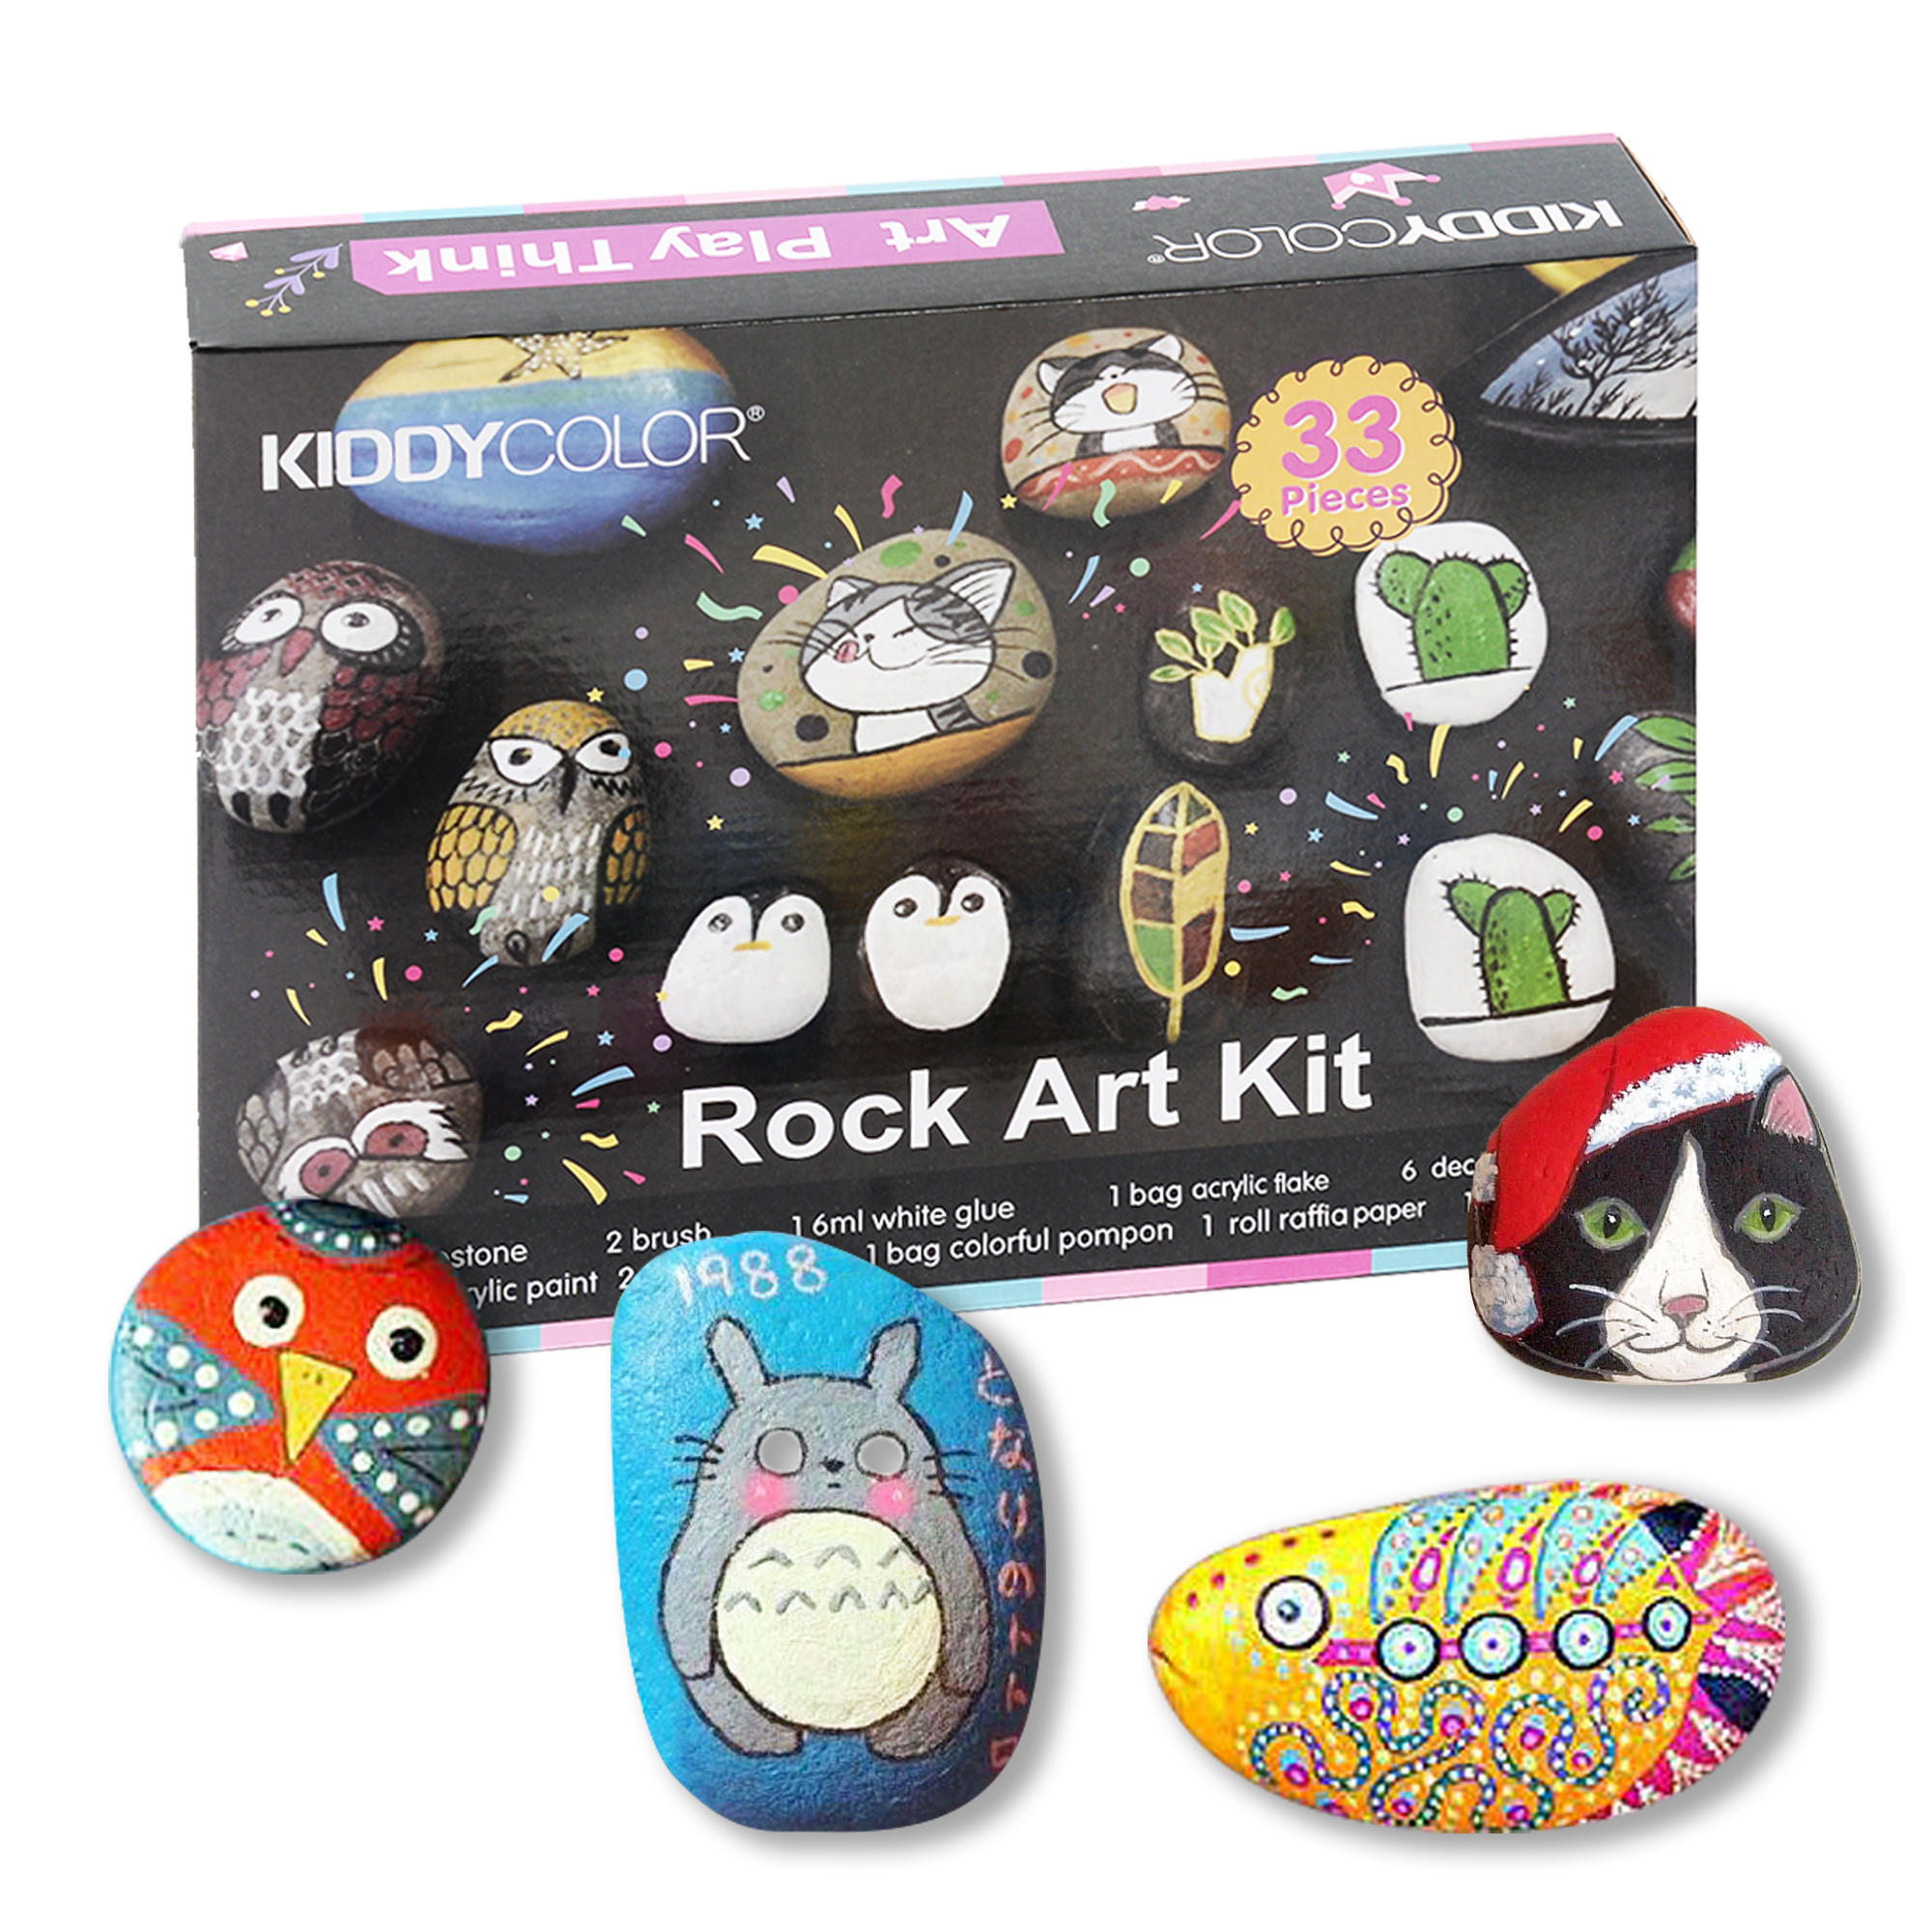 KIDDYCOLOR Rock Art Kit for Painting and Coloring DIY Art Set Creative Colorful Magic Stone Creative Gift for Art Supplies